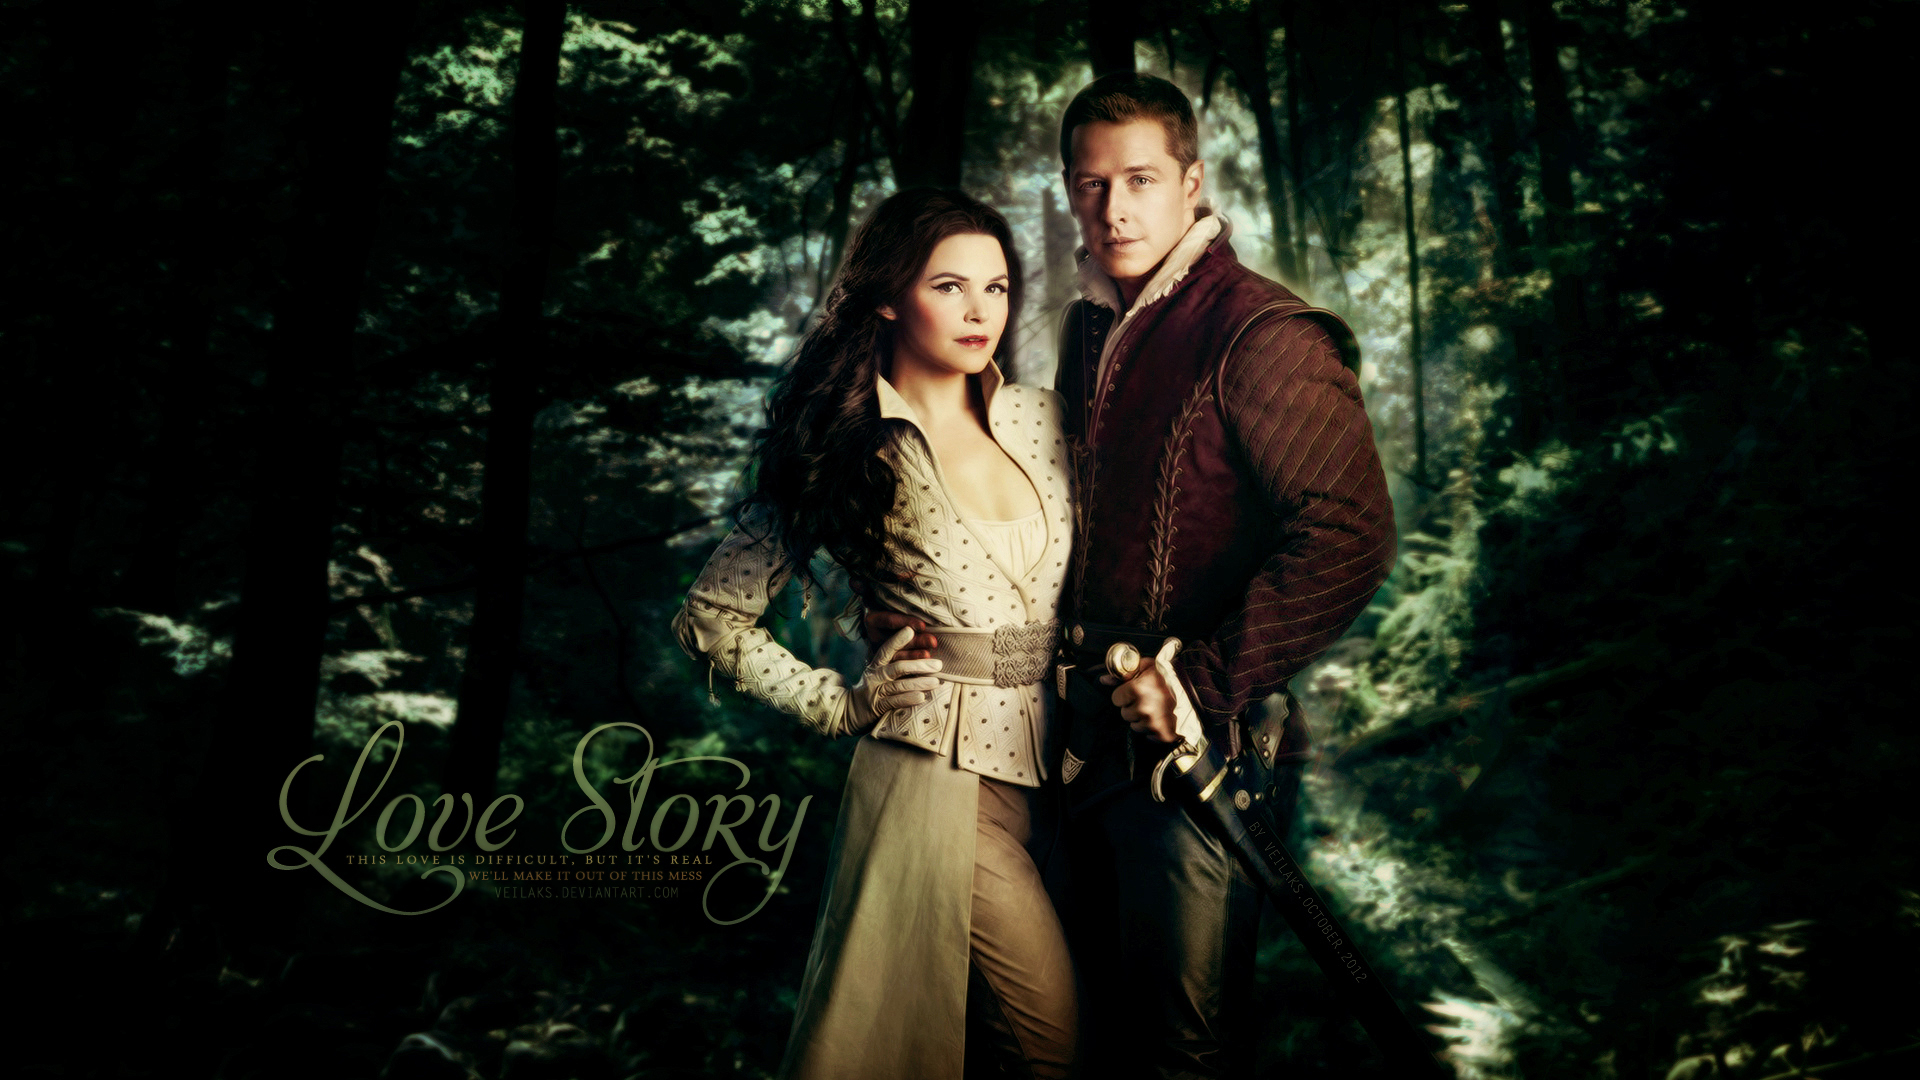 Once Upon A Time Wallpapers High Resolution And Quality